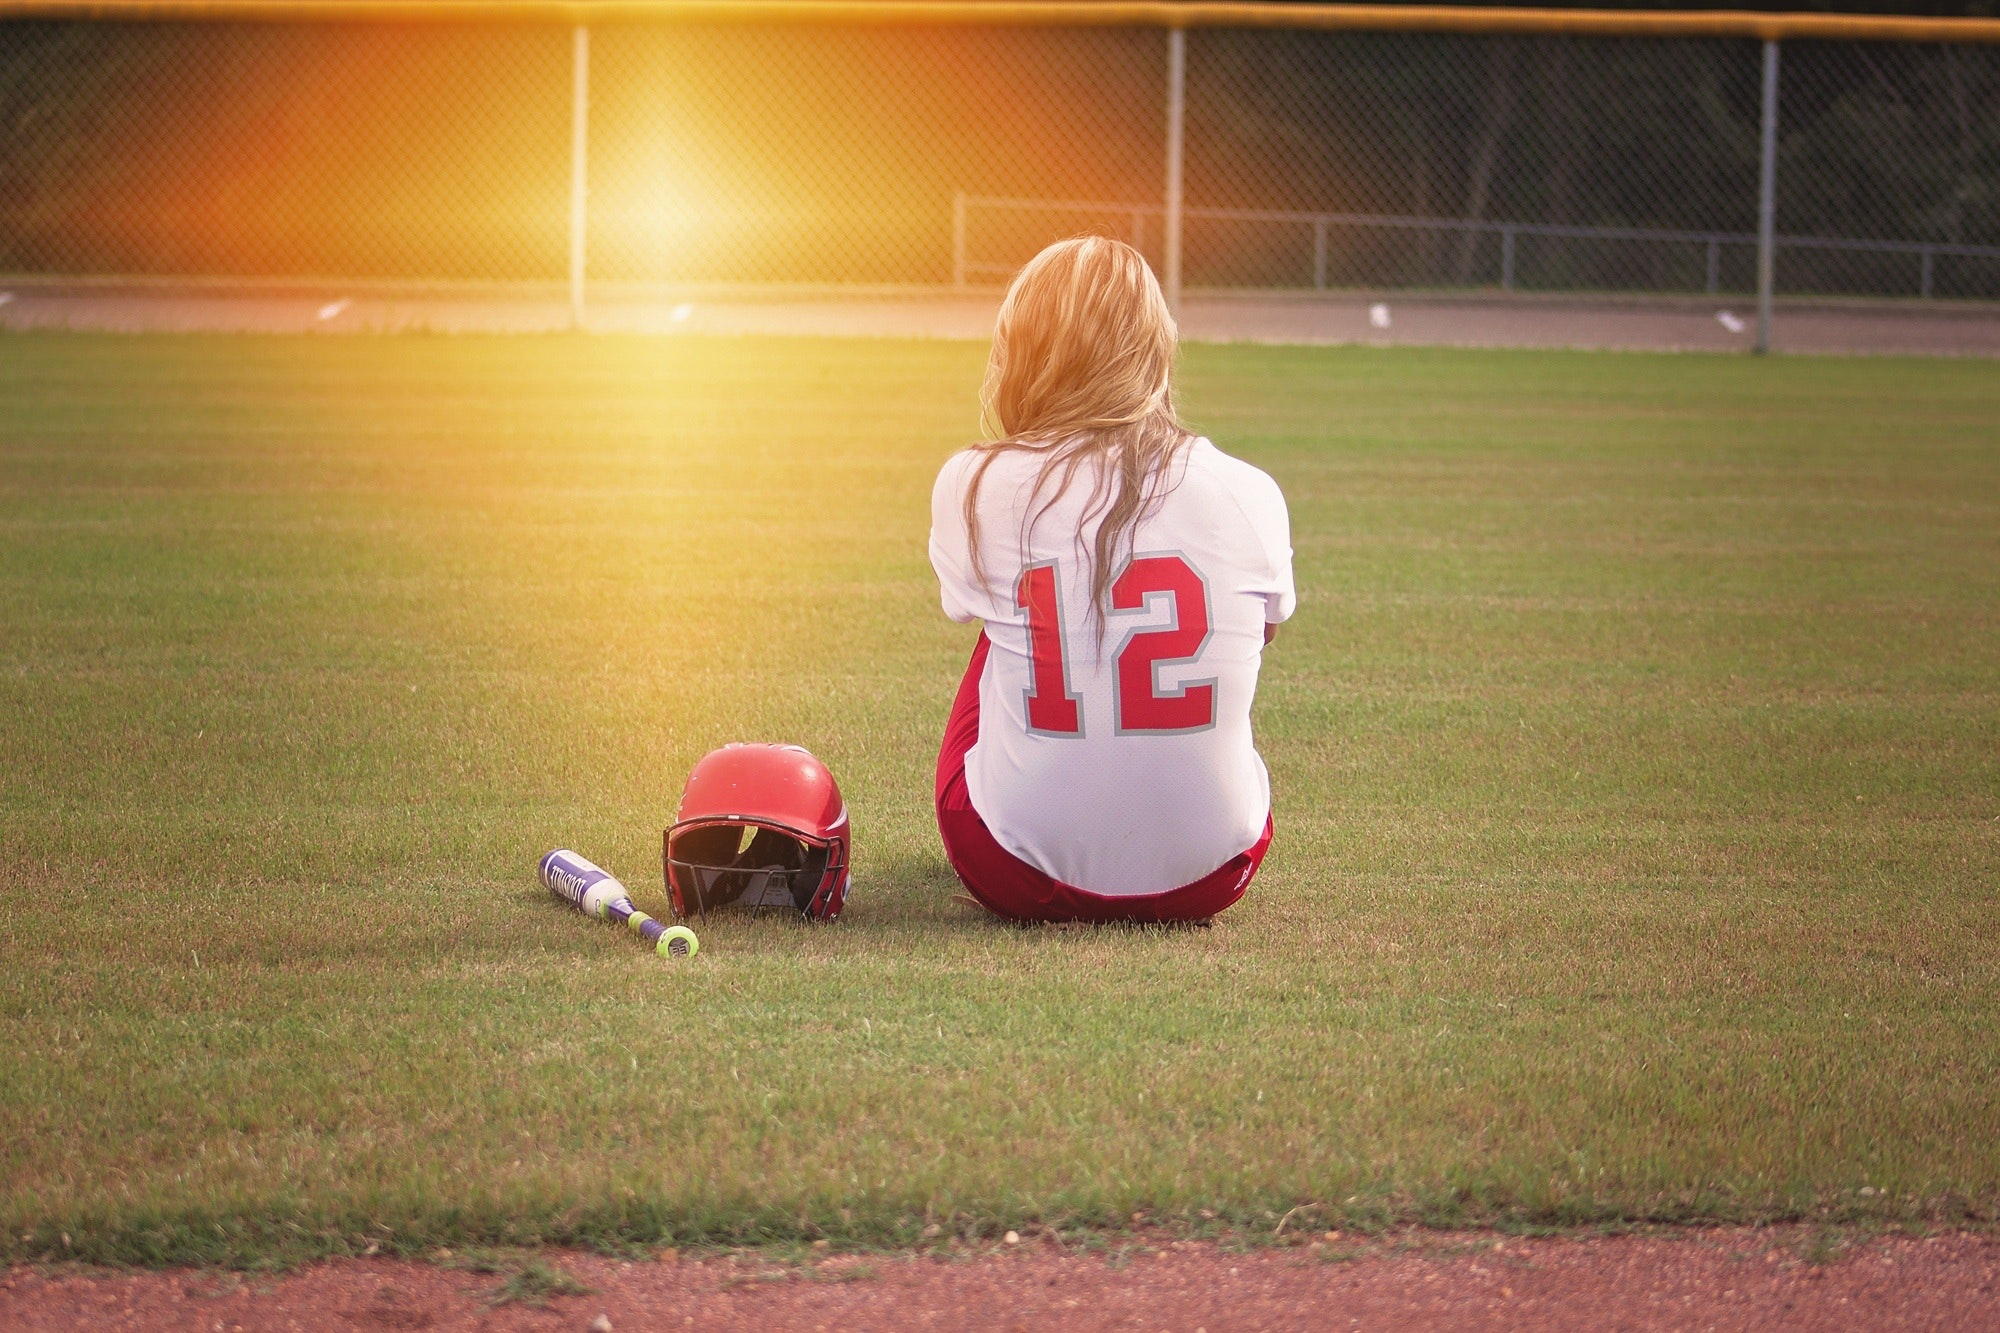 Female Baseball Player Sitting on Grass Field Beside Helmet and Baseball Bat, Athlete, Jersey, Uniform, Sport, HQ Photo